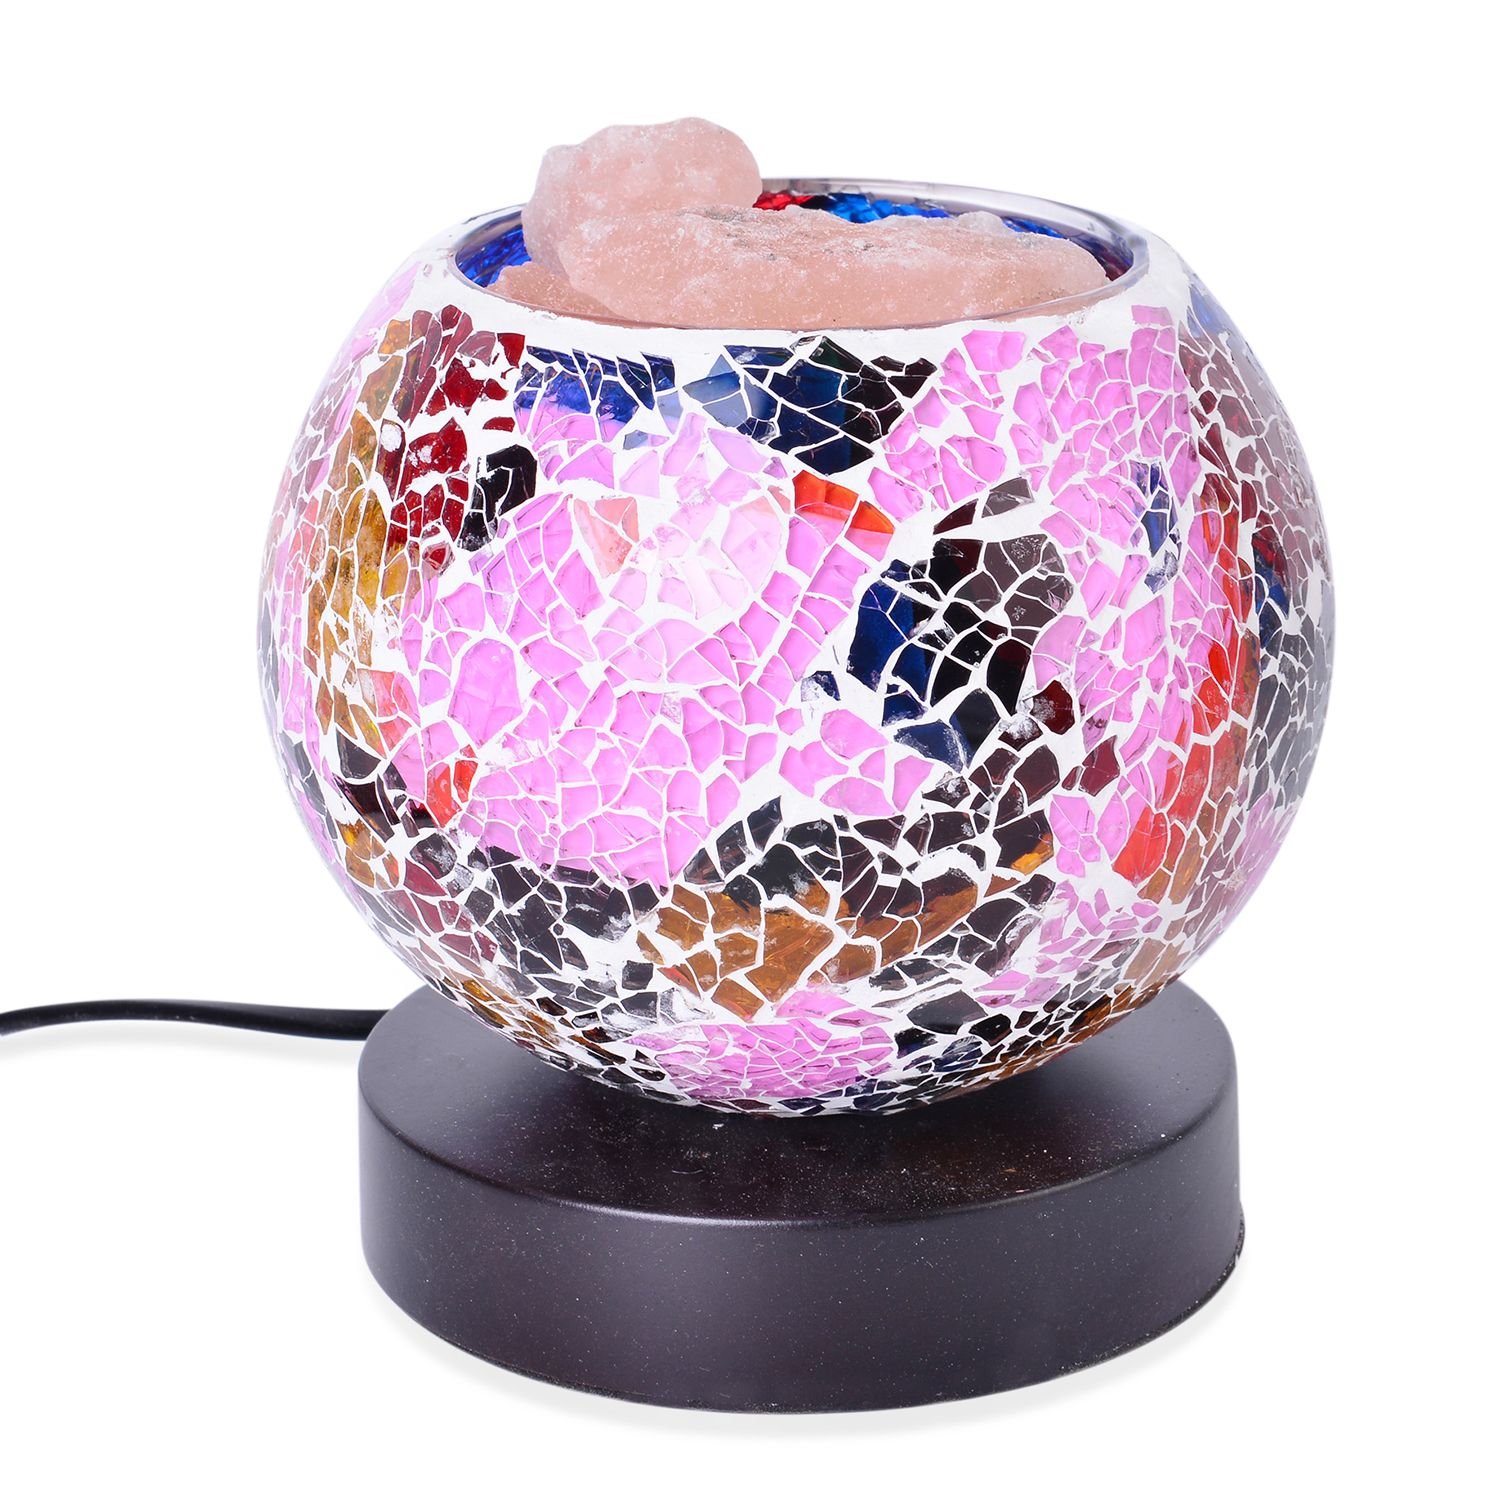 Himalayan Salt Lamp Multicolor : Handcrafted Multi Color Mosaic Electric Lamp with Himalayan Salt (5 in) lighting decor ...